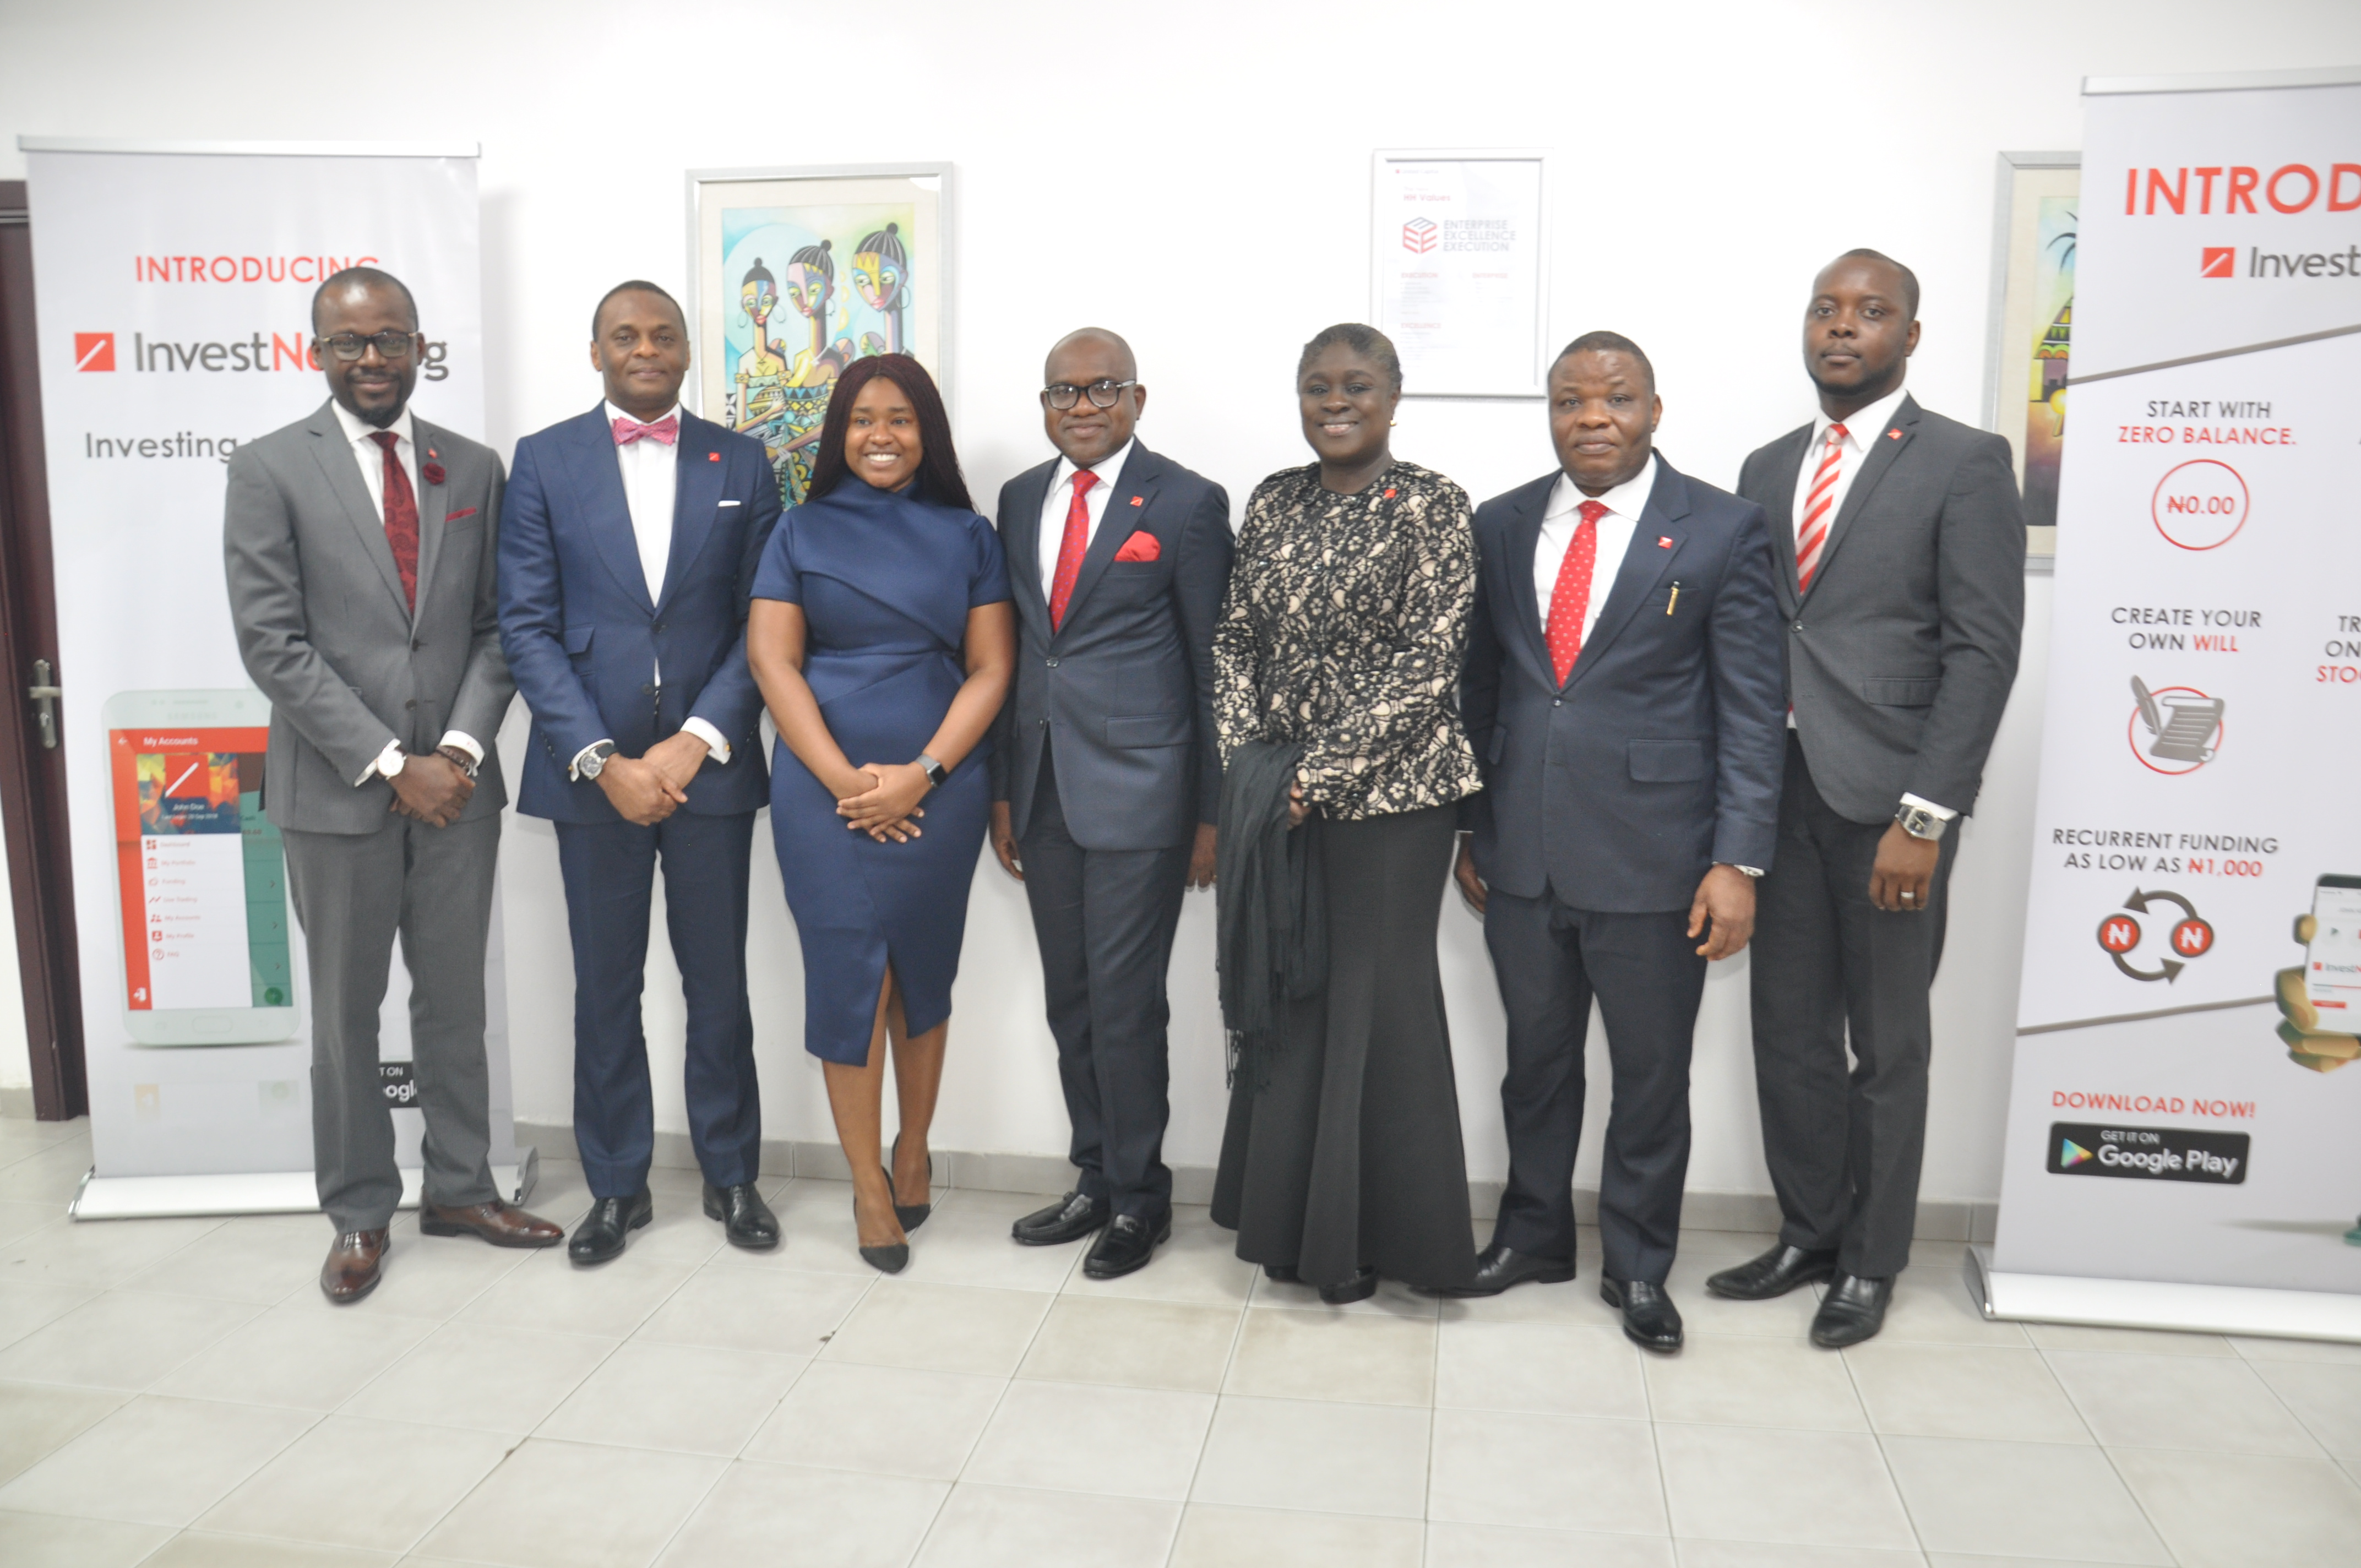 l-r: Babatunde Obaniyi – MD , United Capital Investment Banking ; Jude Chiemeka – MD/CEO ,  United Capital Securities Limited;  Omojola Odusanya – Marketing and Corporate Communications Executive; Peter Ashade – Group CEO , United Capital Plc ; Tokunbo Ajayi  - MD/CEO United Capital Trustees Limited; Sunny Anene – MD/CEO, United Capital Asset Management ;  and Joseph Onyema – Group Chief Information Officer,